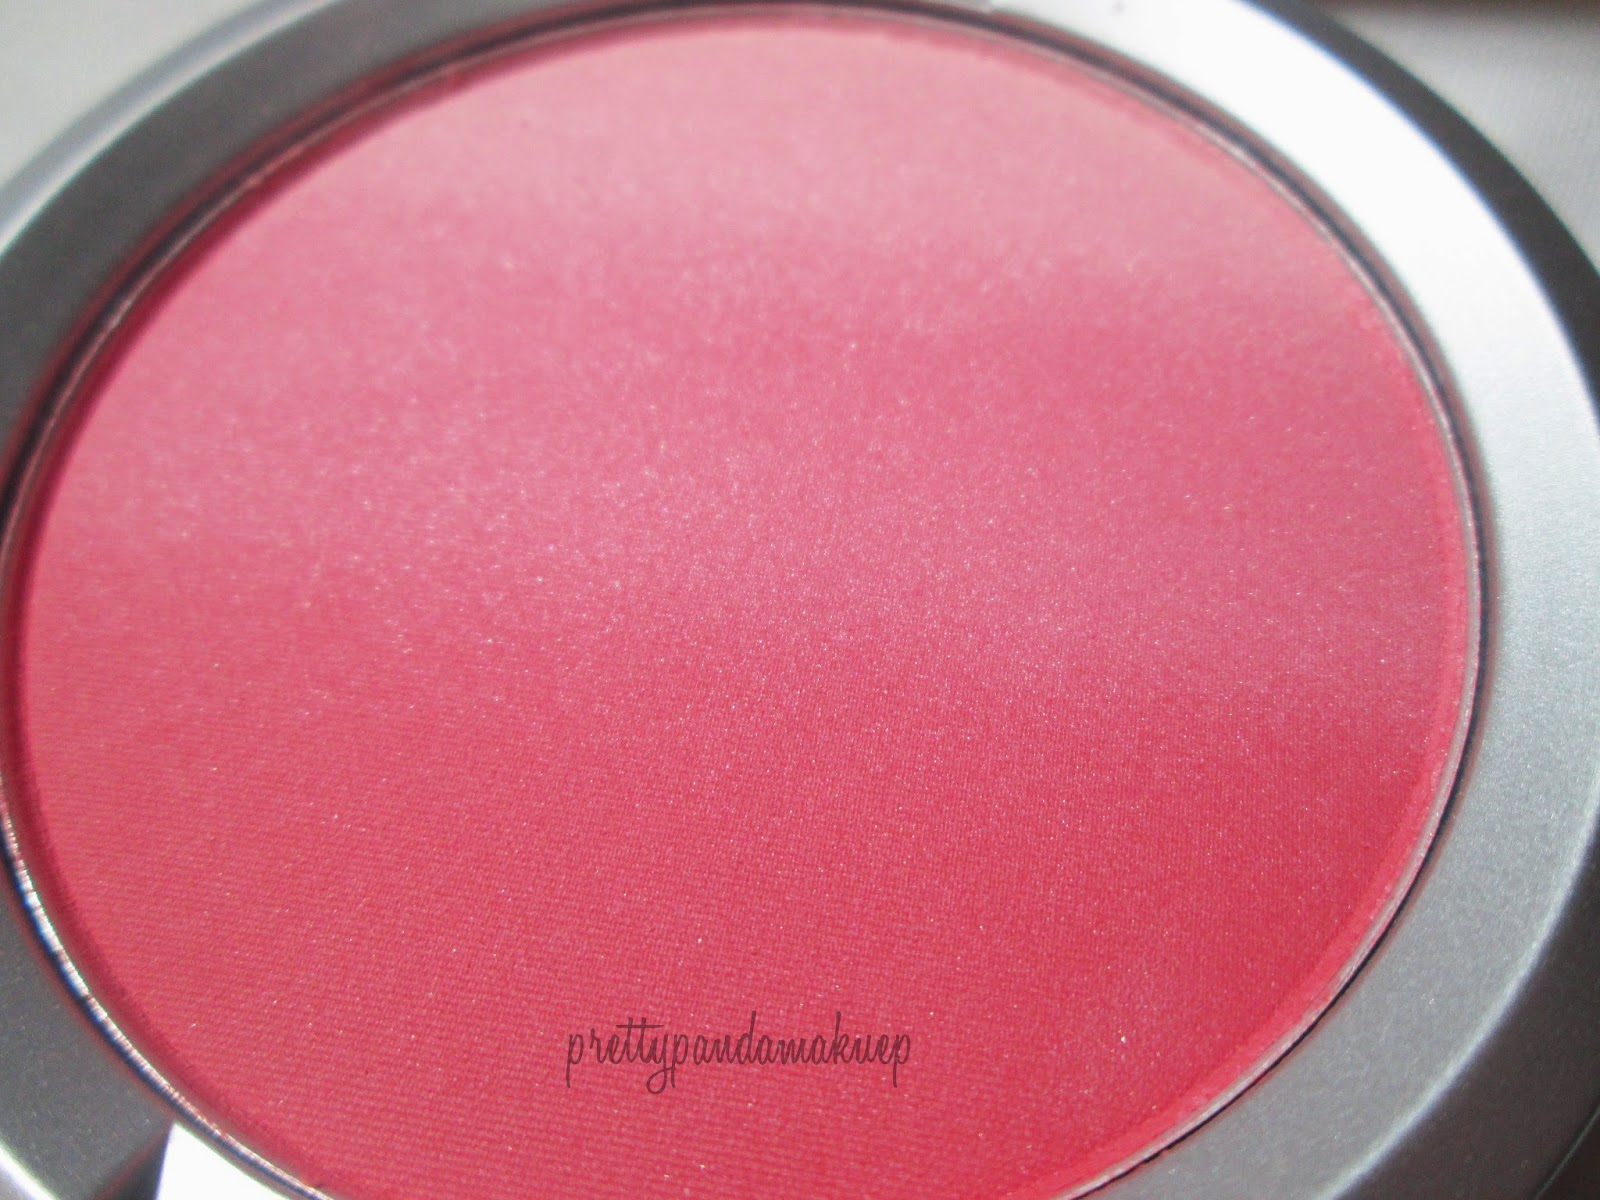 prettypanda it cosmetics cc radiance ombre blush in je